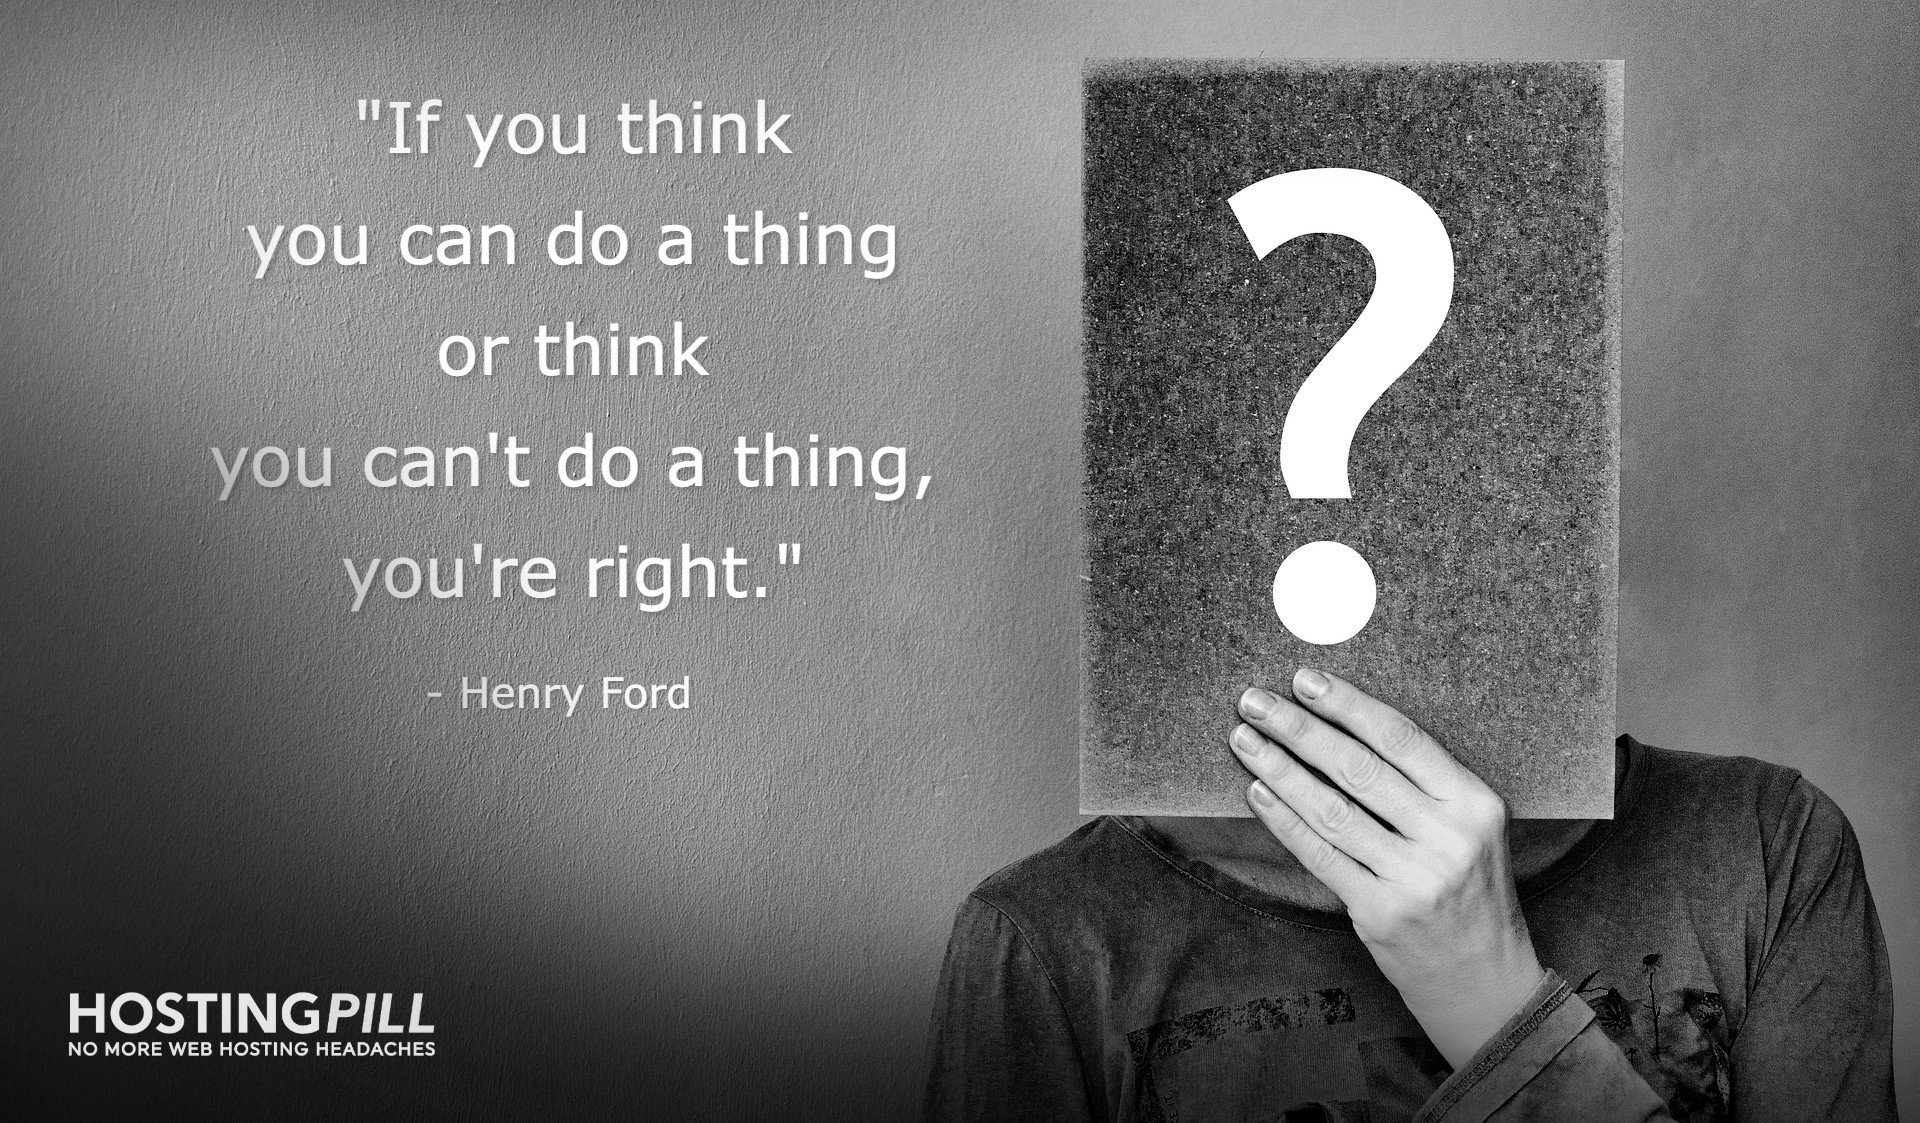 If you think you can do a thing or think you can't do a thing, you're right.